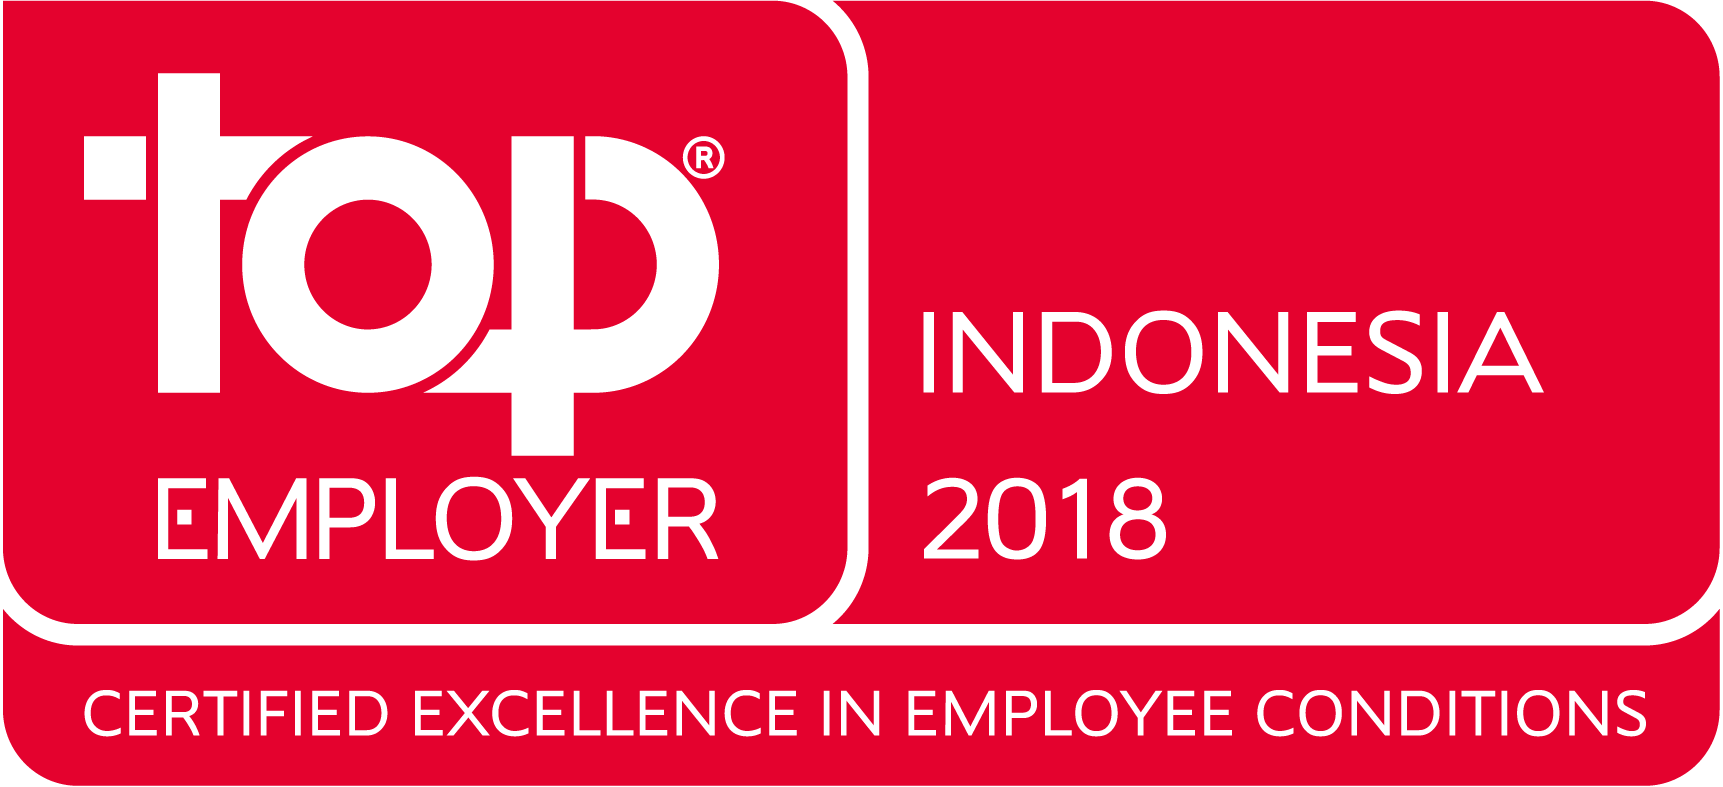 Top_Employer_Indonesia_2018